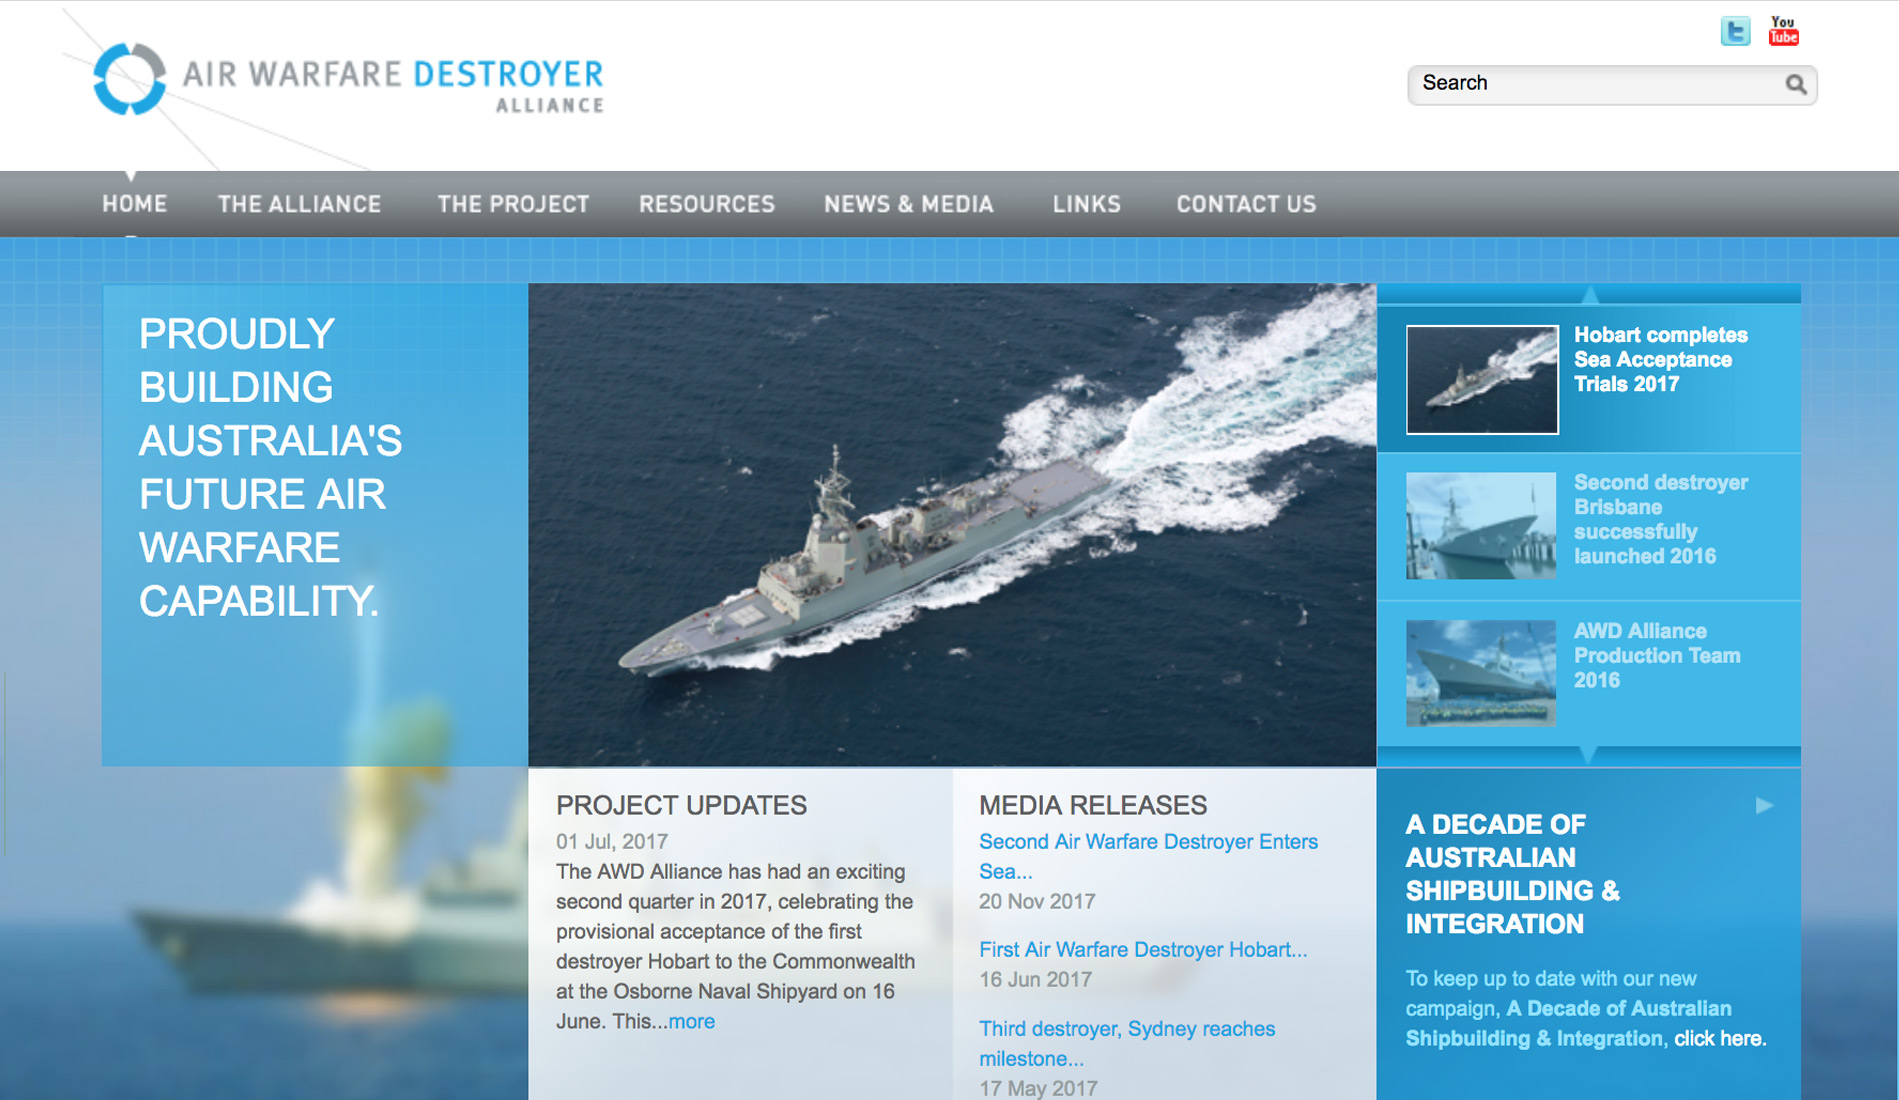 Air Warfare Destroyer Alliance website hits the target